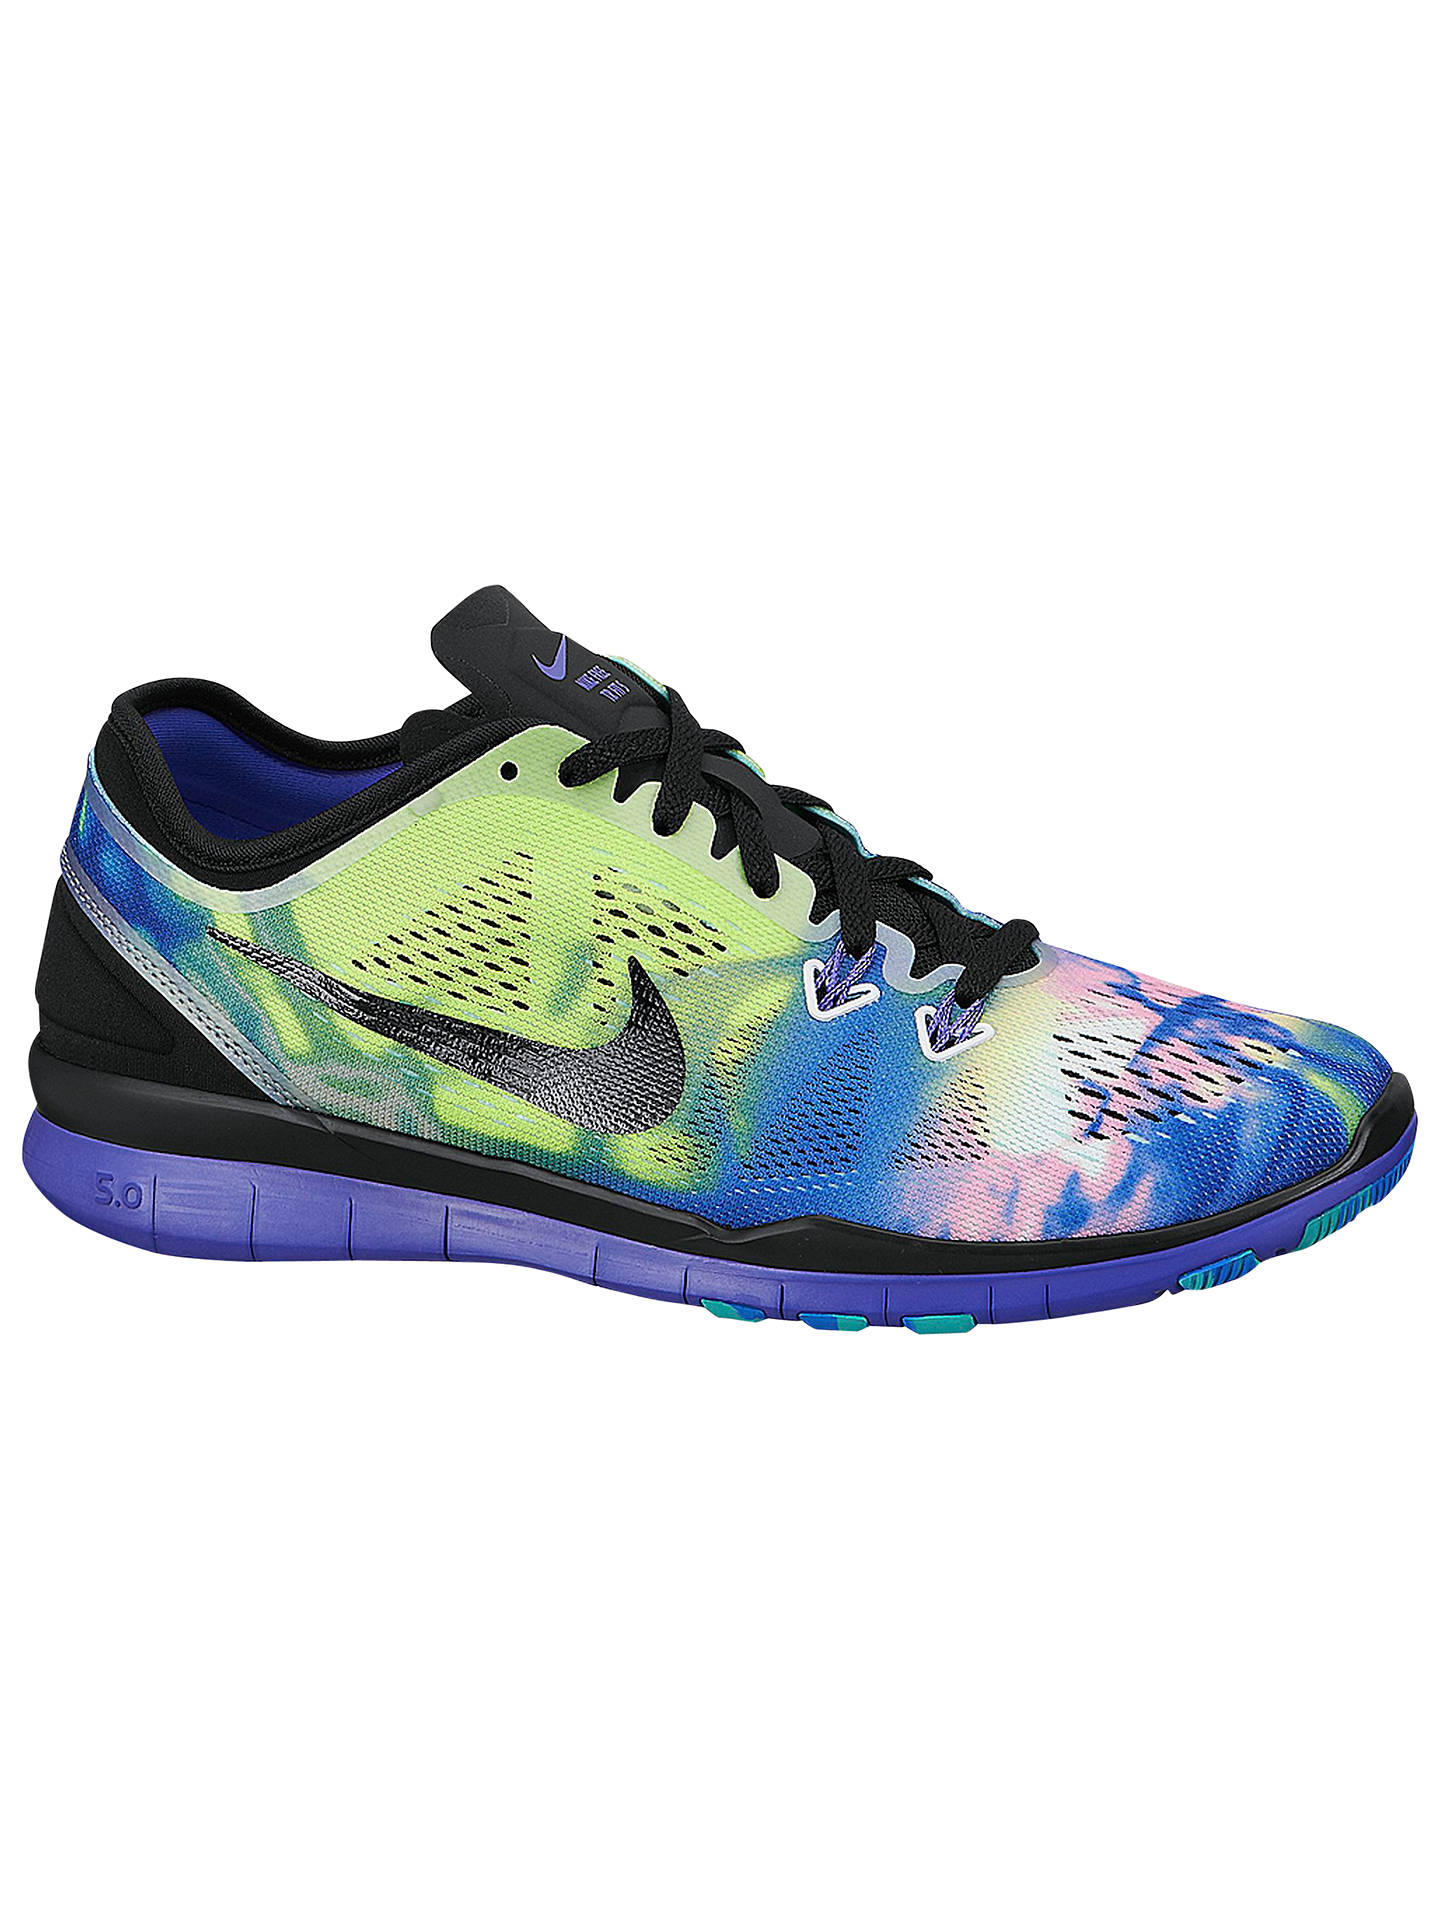 online retailer a7fb7 ea4d4 Buy Nike Free TR Fit 5 Print Women s Cross Trainers, Green Violet, 4 ...